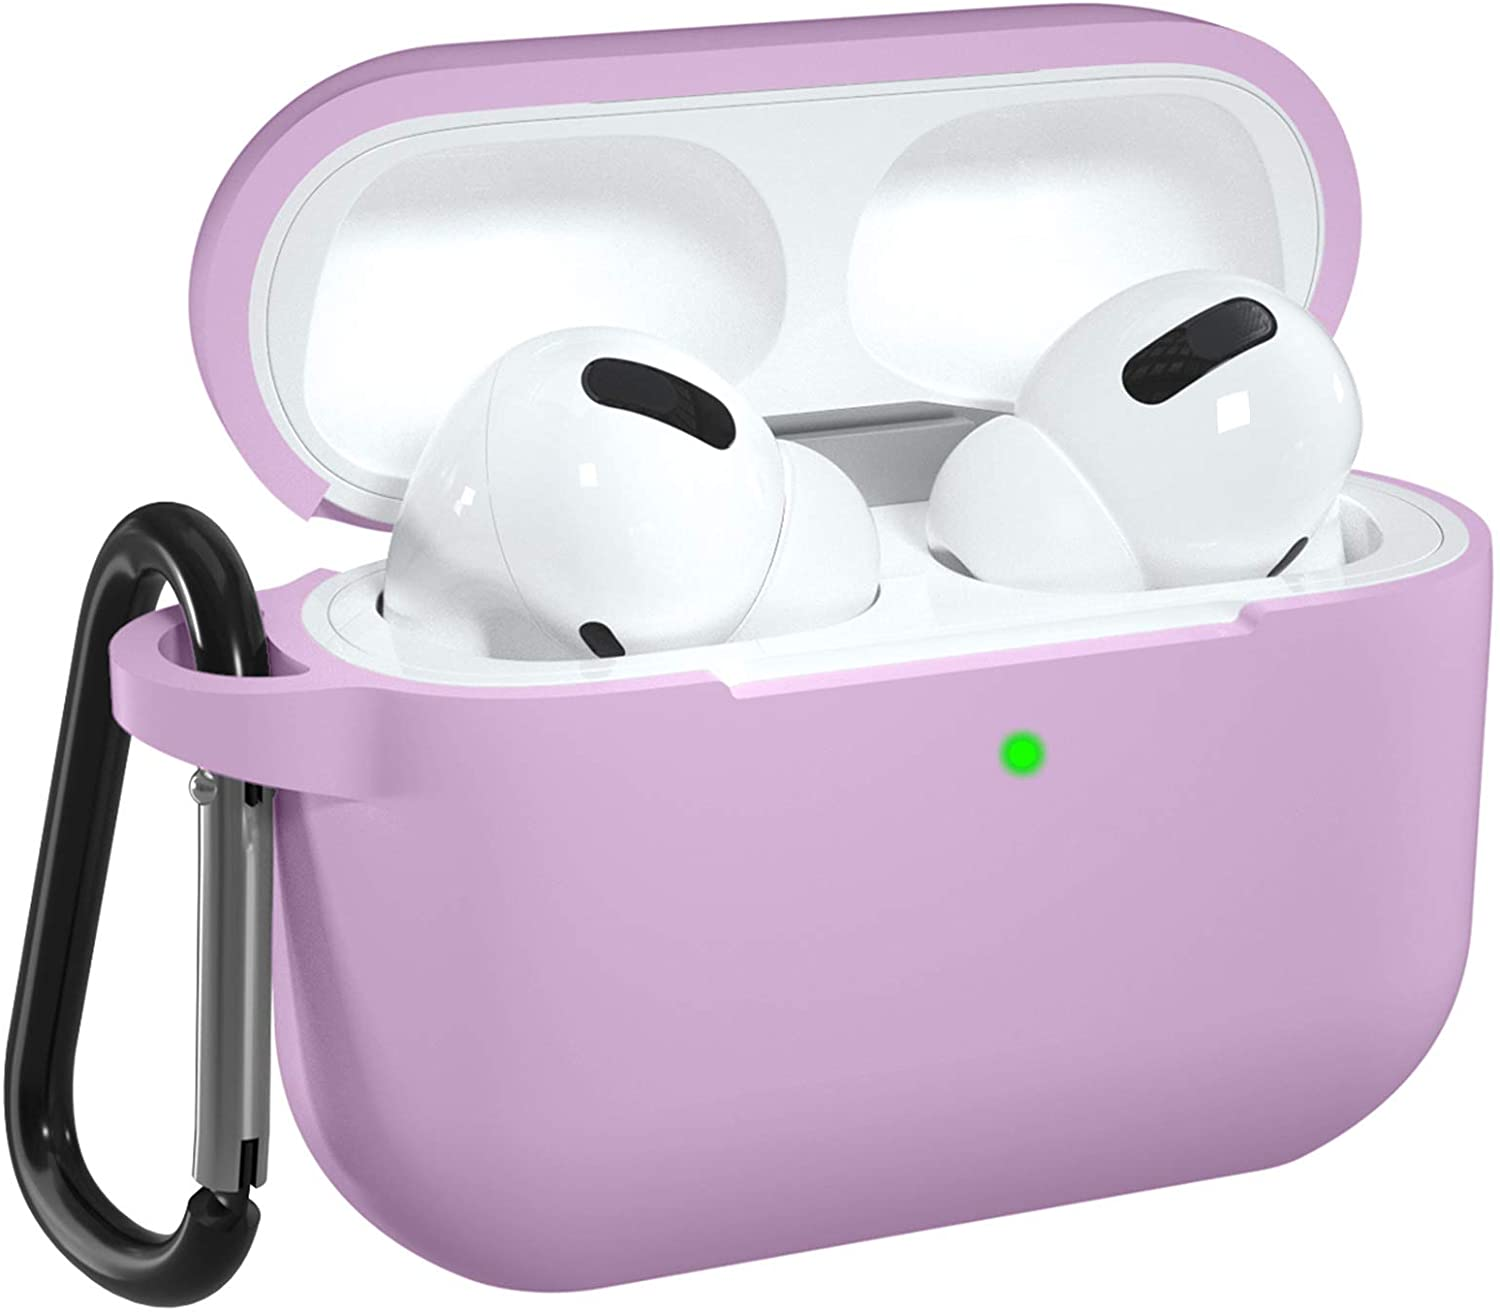 DGege Silicone Case Cover Compatible with Apple AirPods Pro, Protective Case with Carabiner for Airpods 3 (Front LED Visible), Lavender